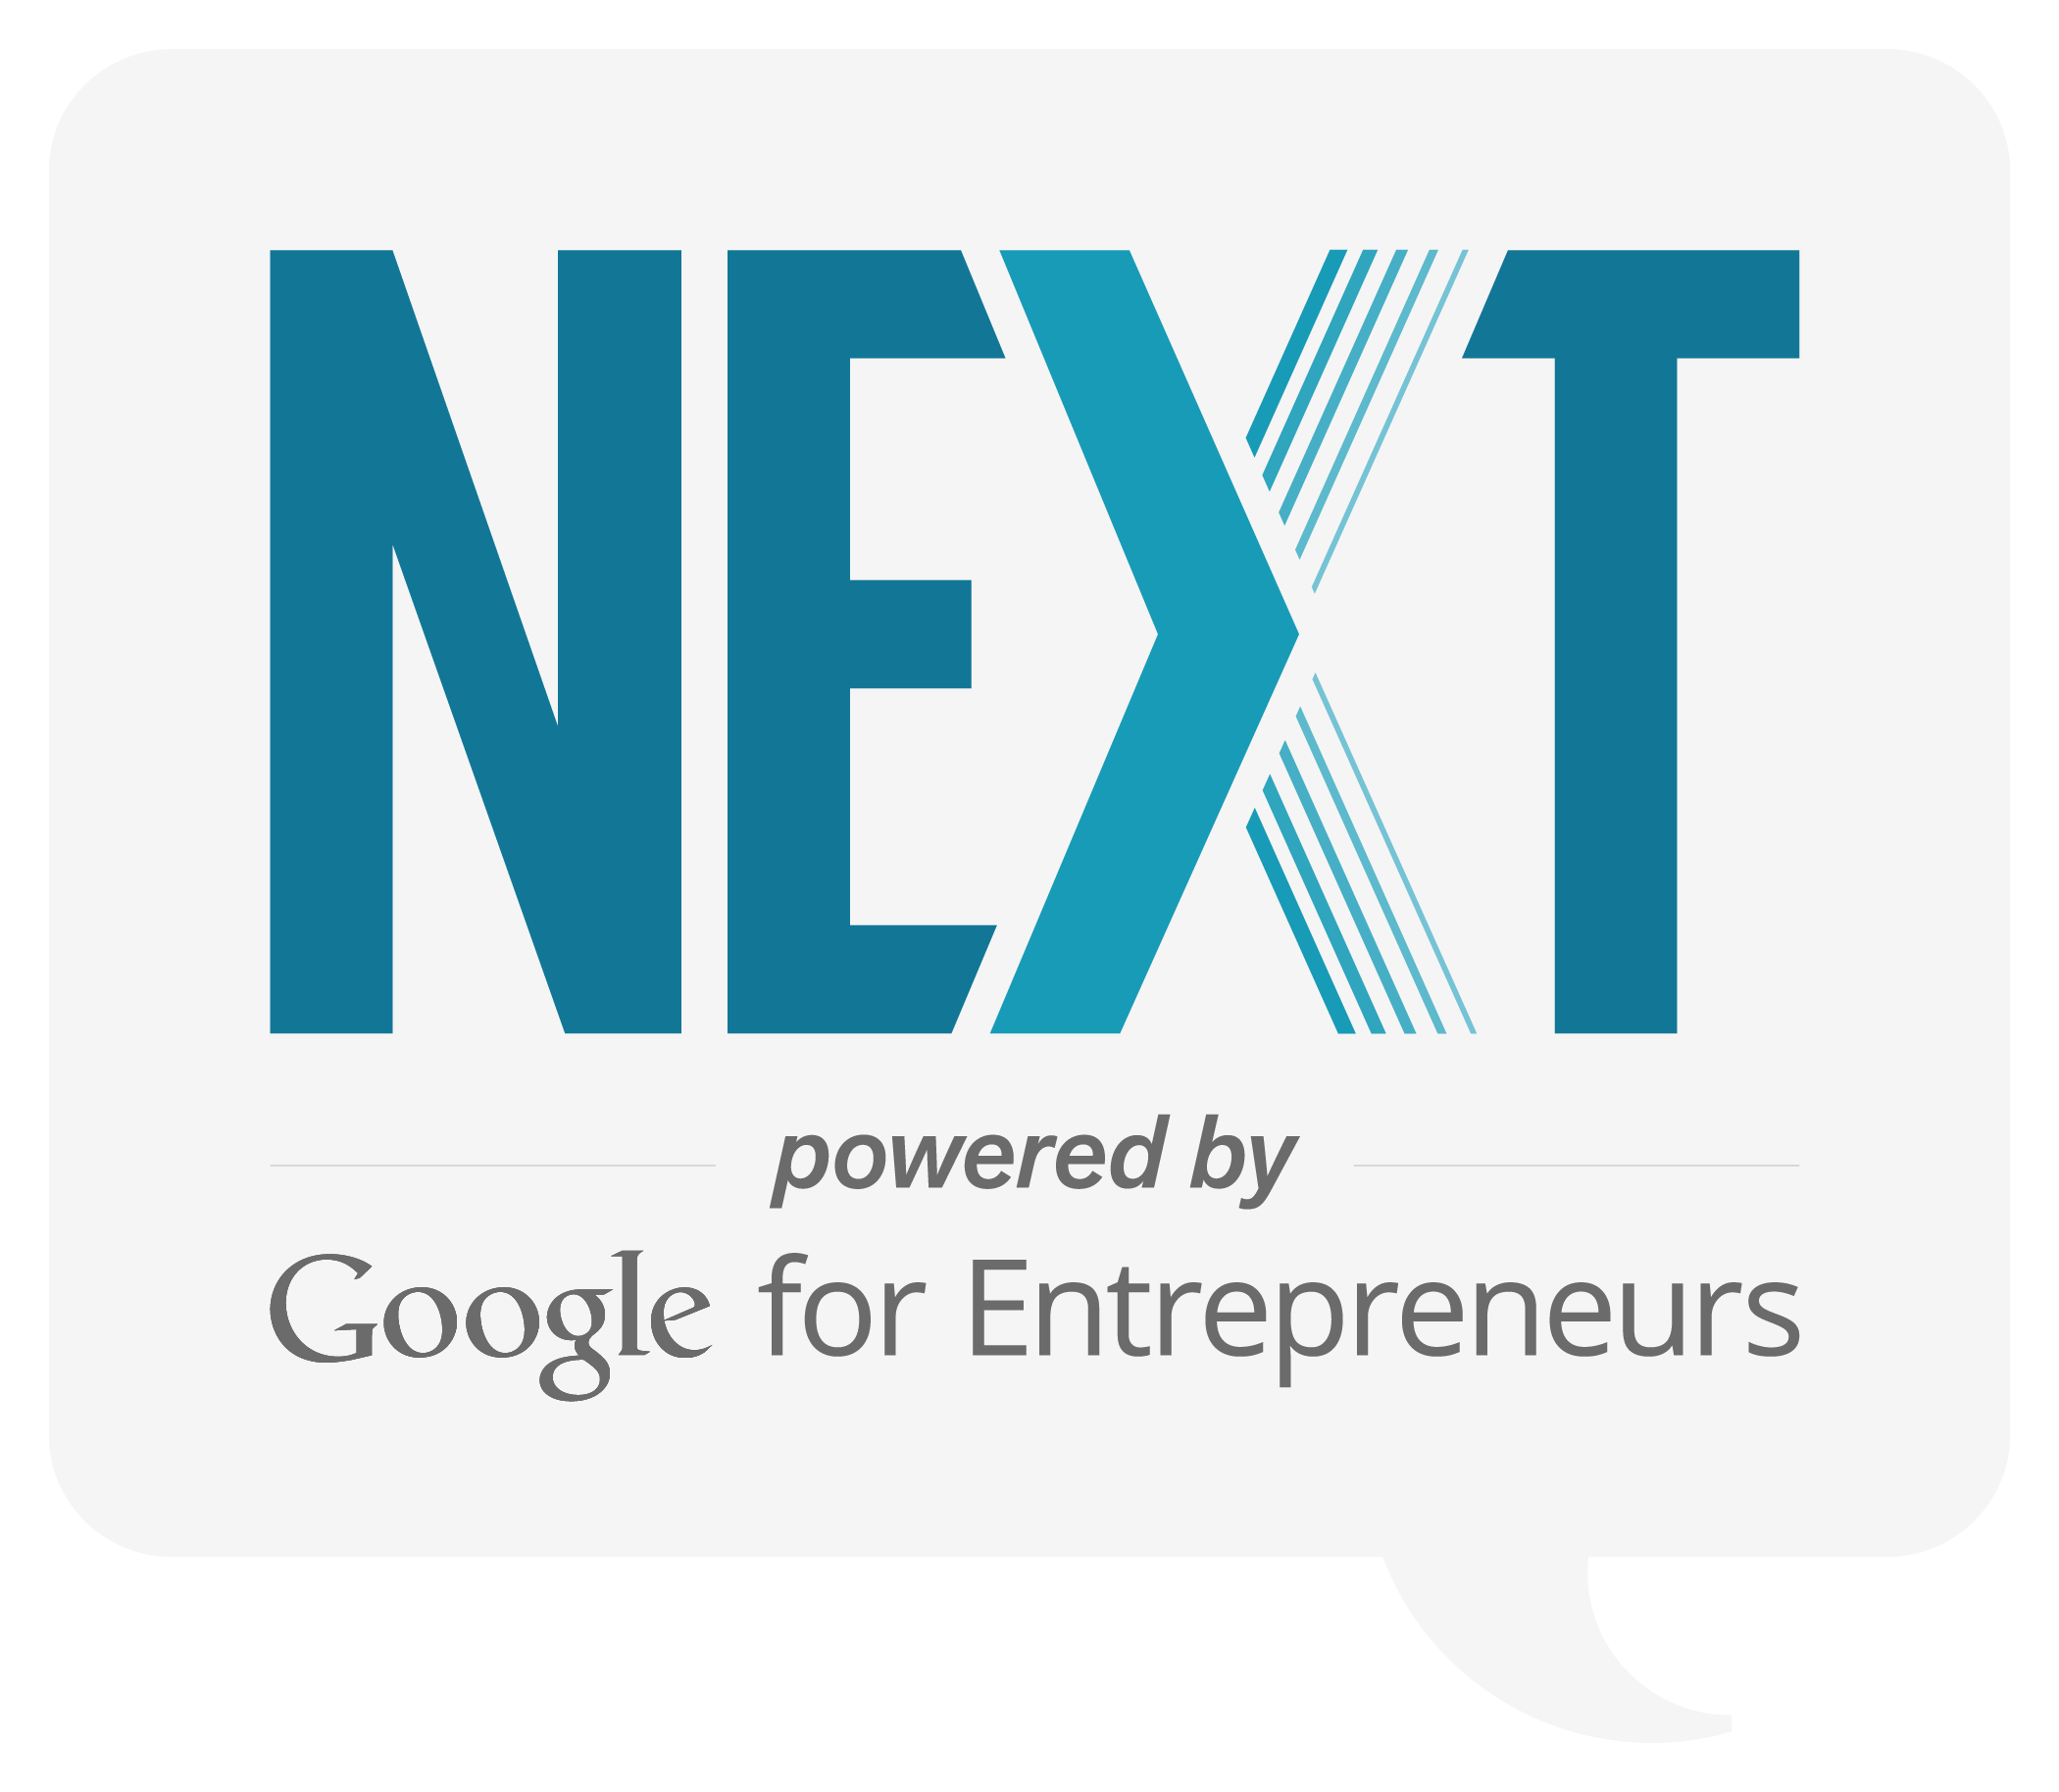 NEXT by Google